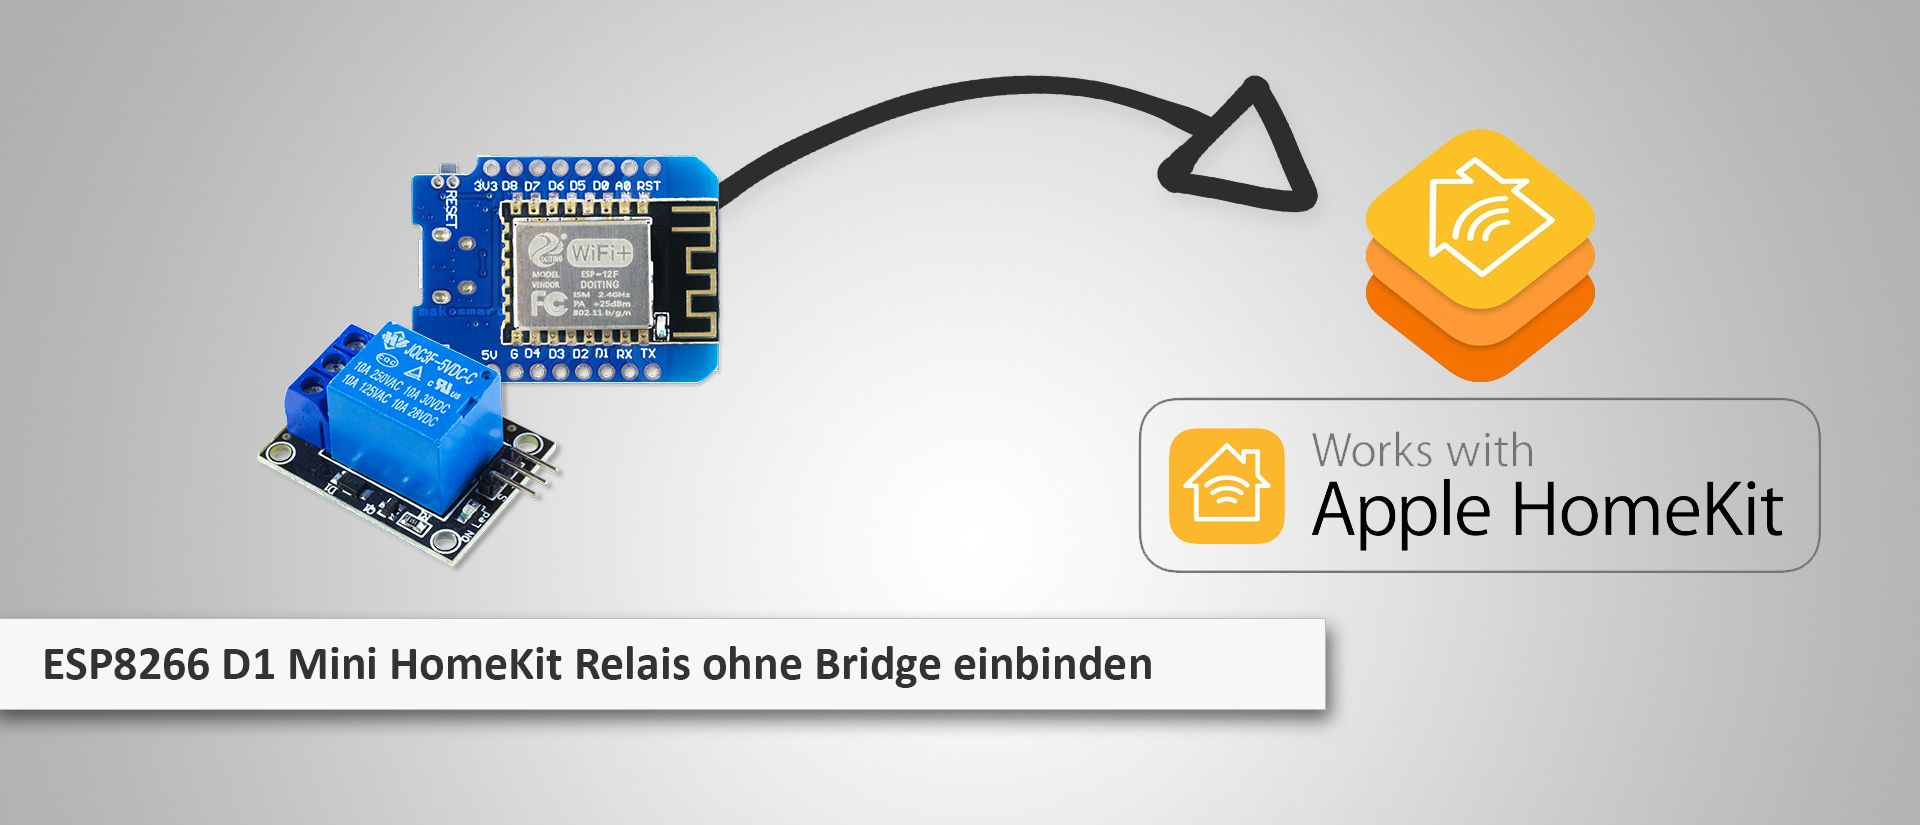 makesmart: ESP8266 D1 Mini als HomeKit Relais ohne Bridge - Tutorial